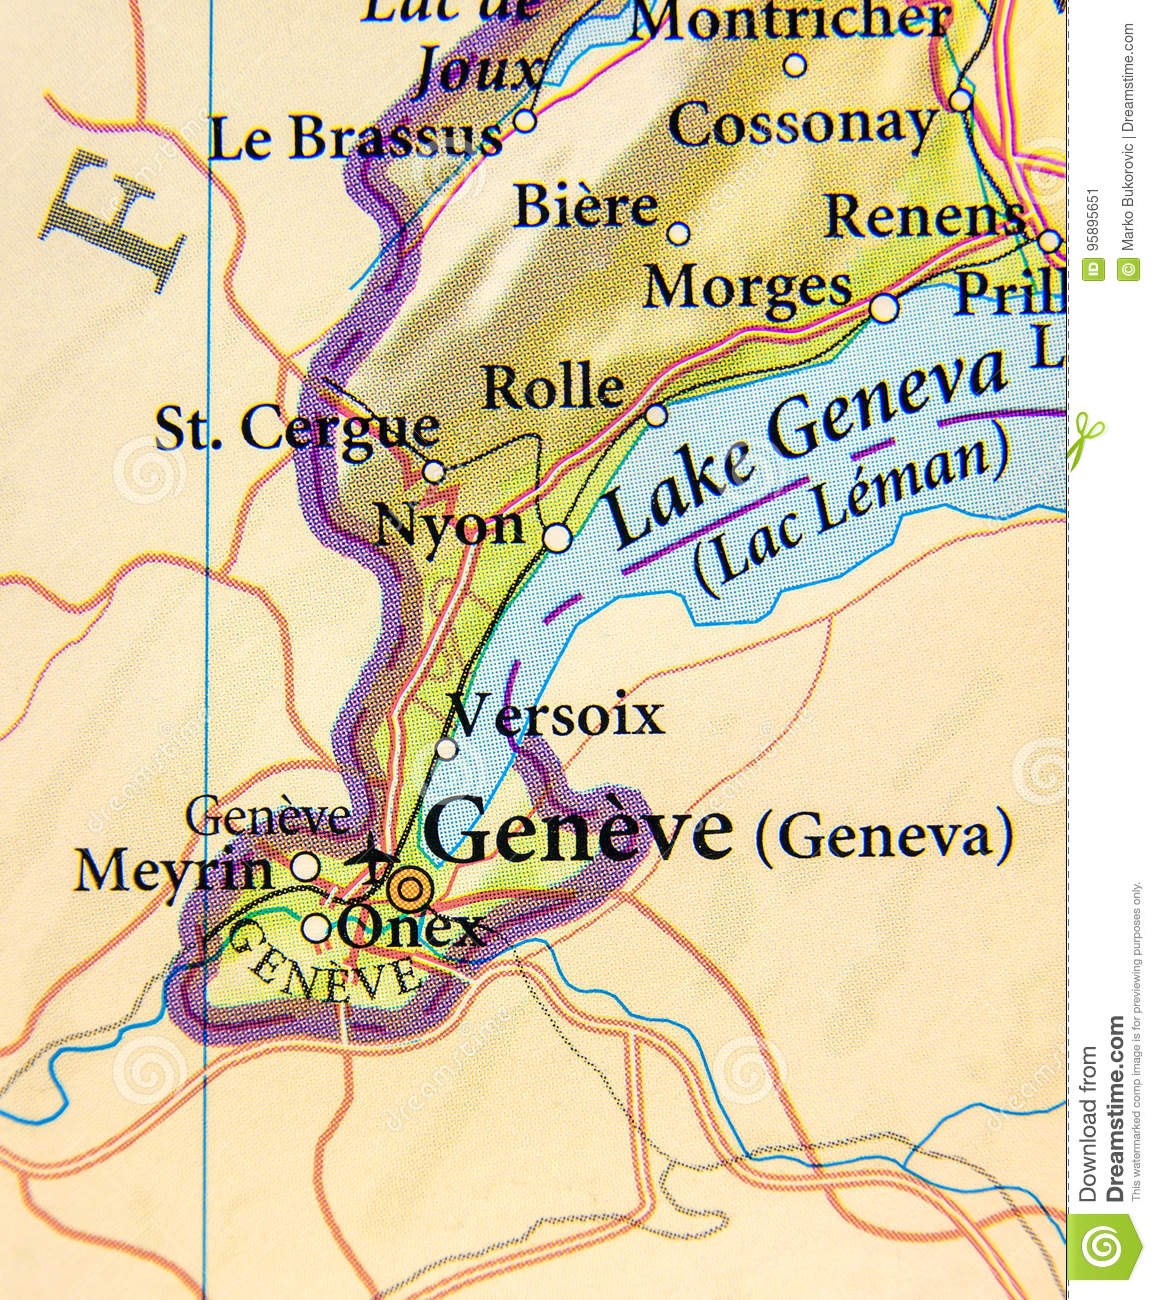 Geographic Map Of European Country Switzerland With Geneva City